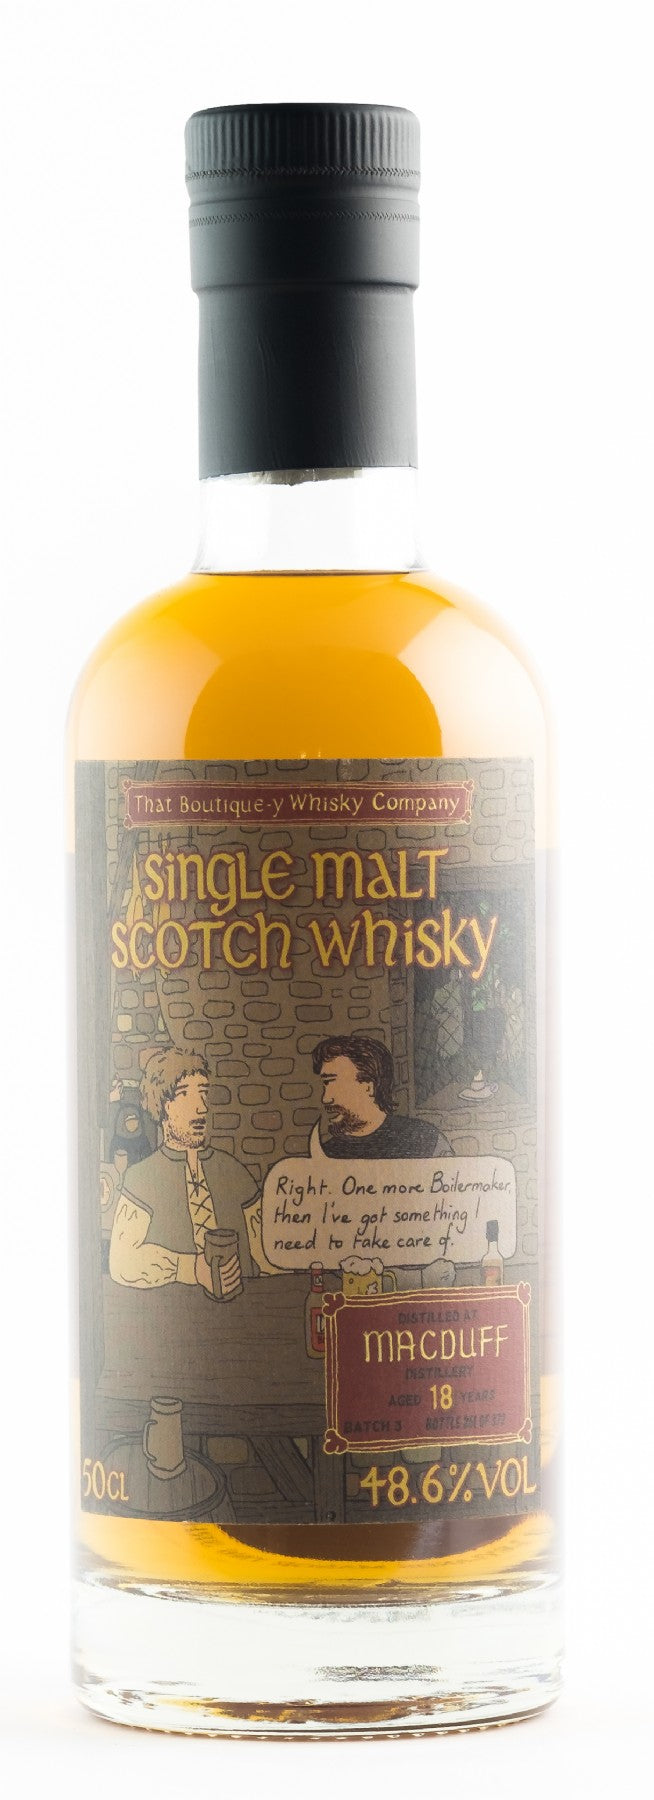 MACDUFF BOUTIQUE-Y 18YO 48.6% 500ML